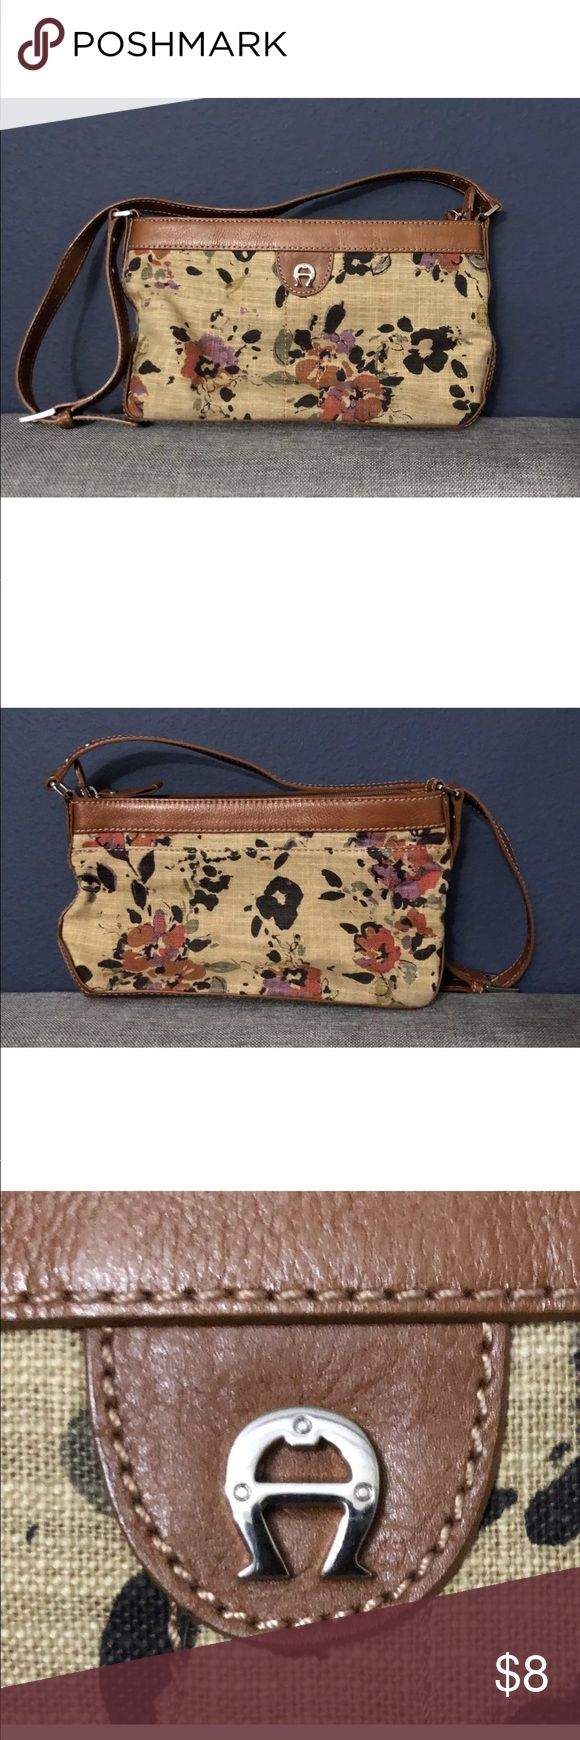 Etienne Aigner floral shoulder bag Pre owned with stains on the bottom Etienne Aigner Bags Shoulder Bags